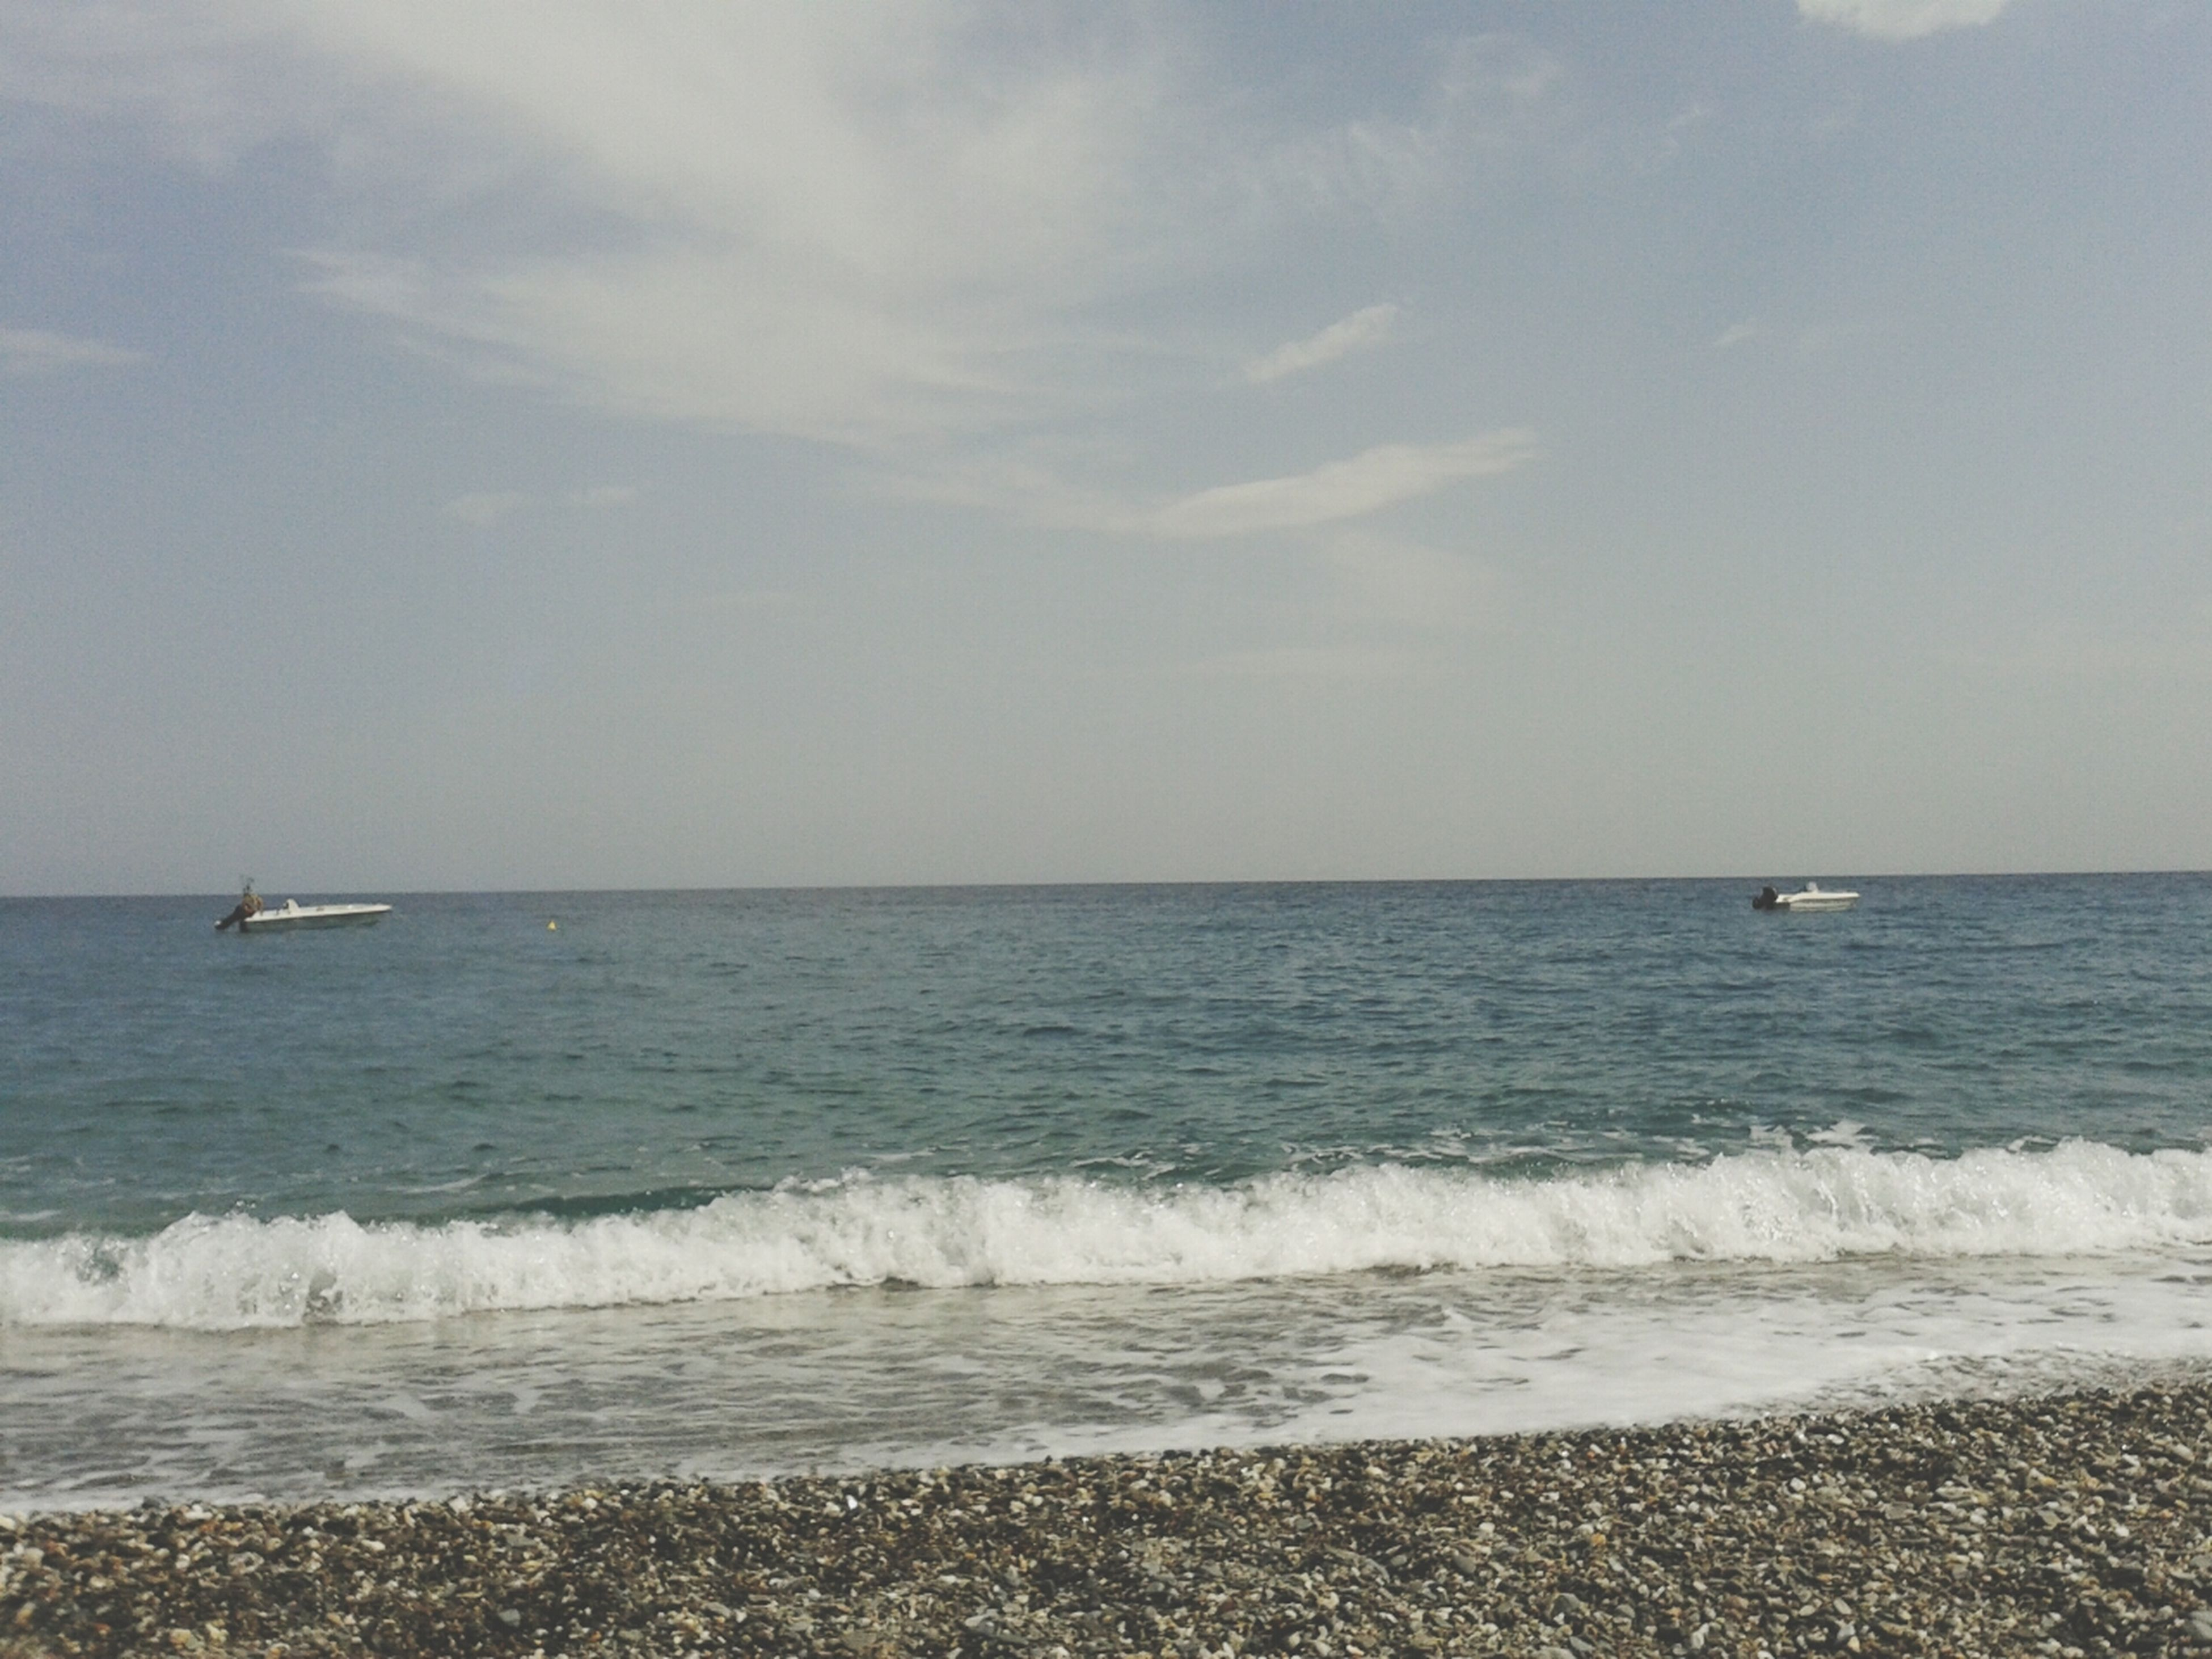 sea, horizon over water, water, nautical vessel, transportation, mode of transport, sky, boat, scenics, beach, tranquil scene, beauty in nature, shore, tranquility, nature, wave, seascape, idyllic, travel, cloud - sky